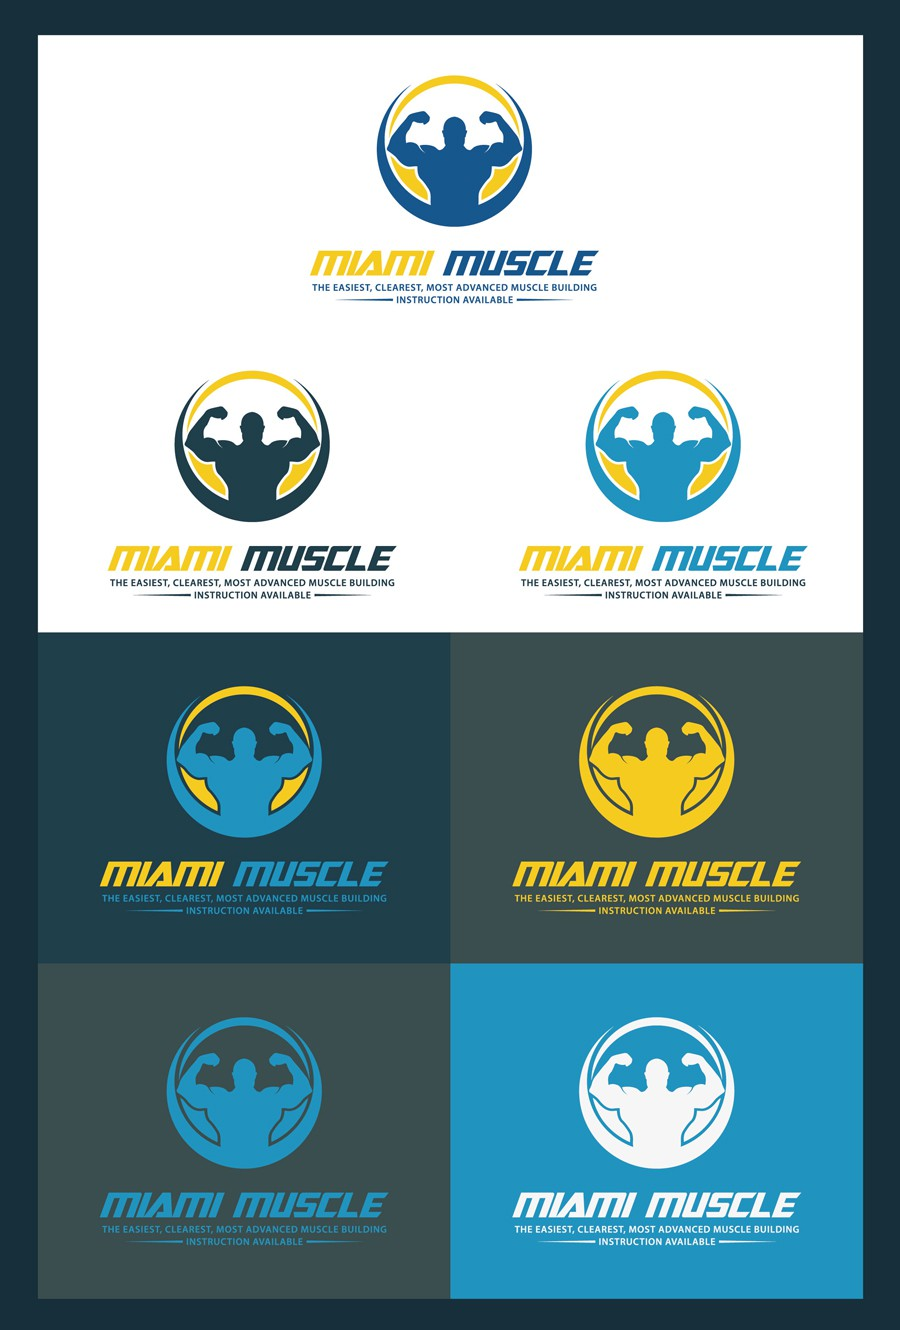 New logo wanted for Miami Muscle